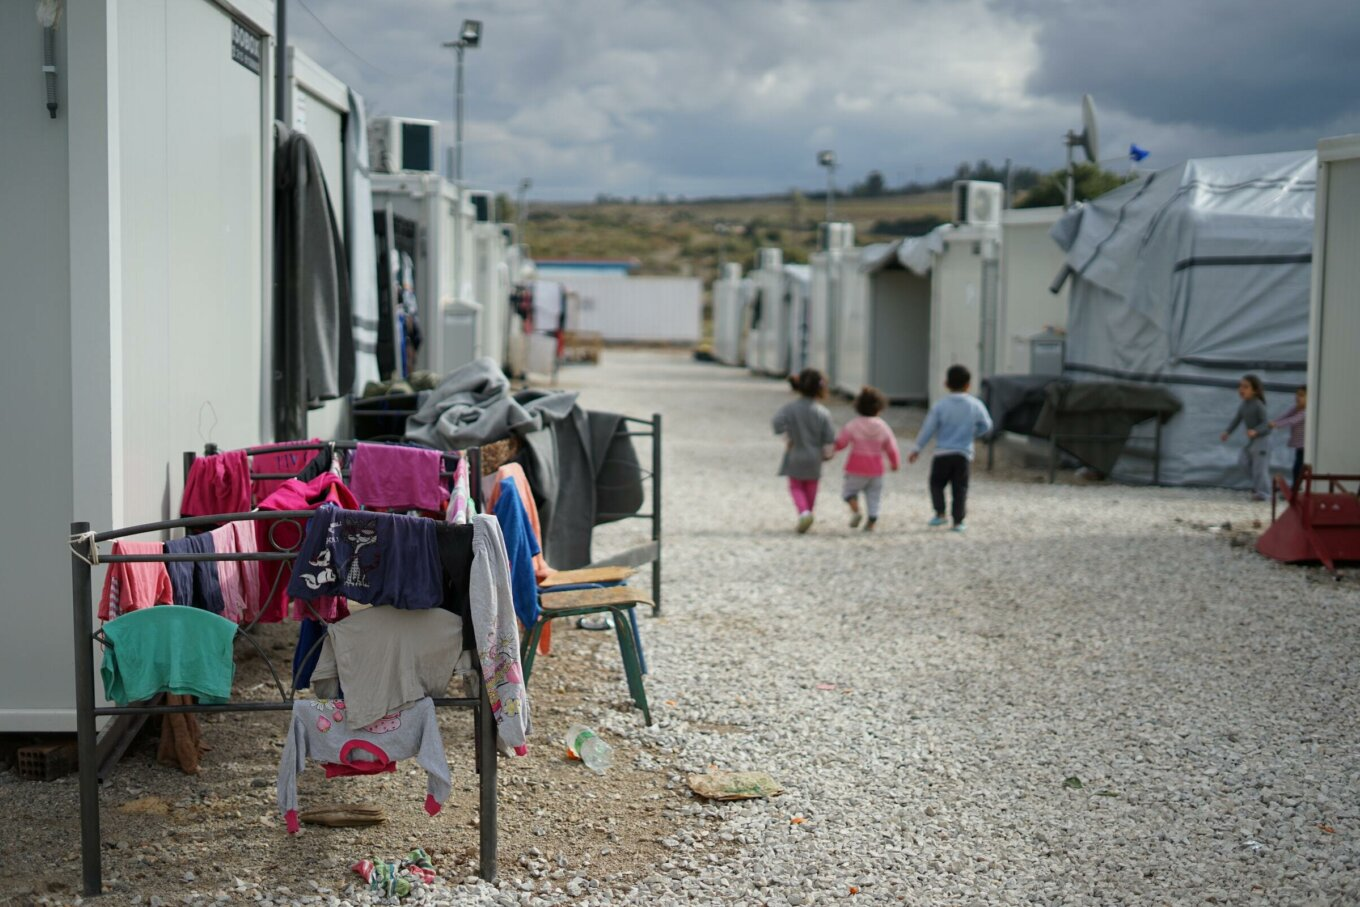 Syrian refugee camp near Athens